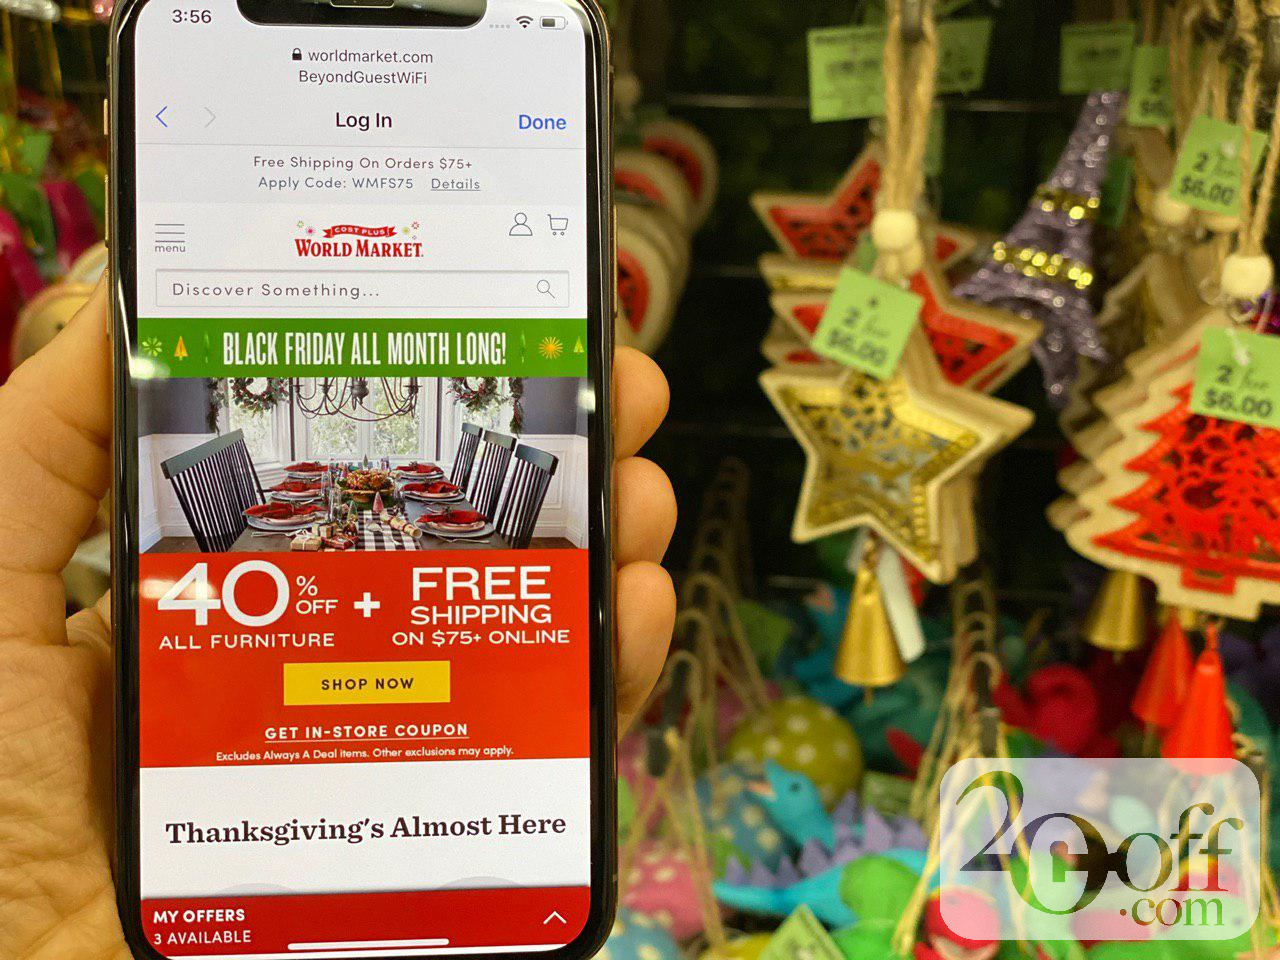 World market 40% OFF Black Friday Coupon